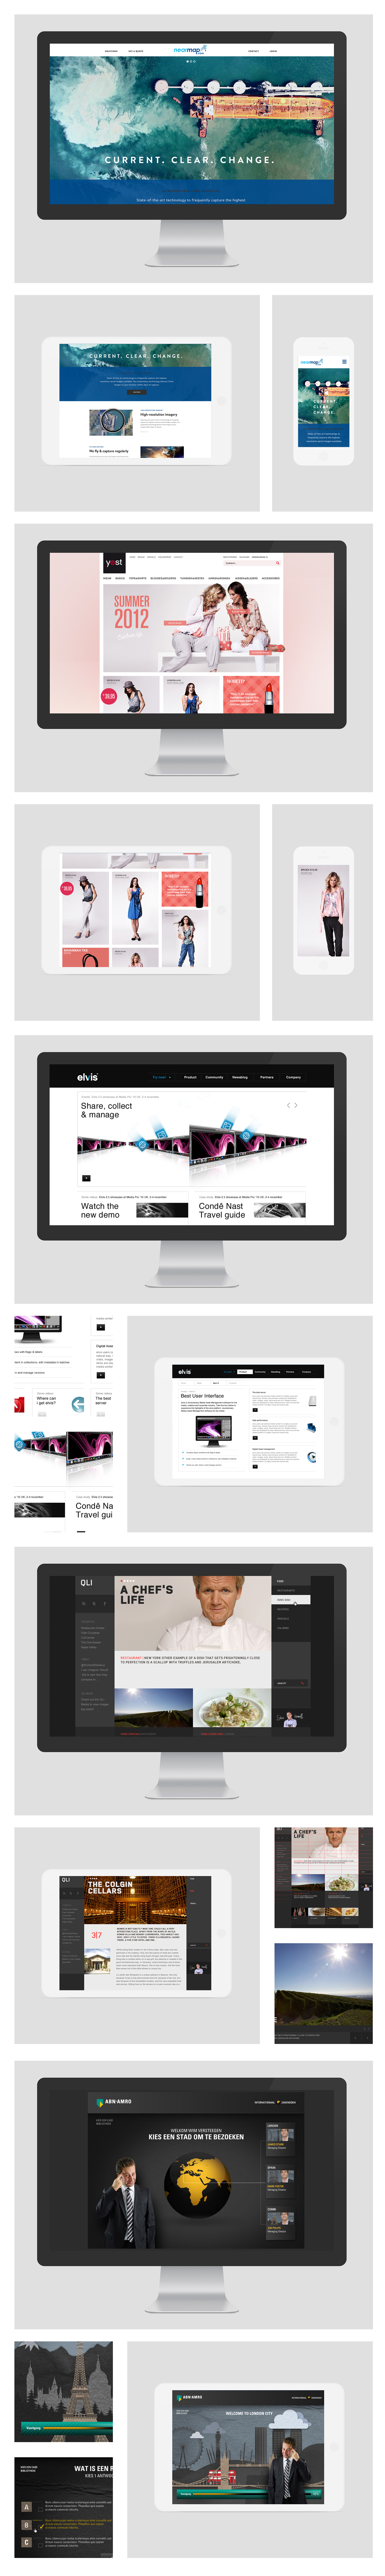 Webdesign Collection Travel hotel Food  business webshop Clothing luxury industrial tv personality Technology ict IT